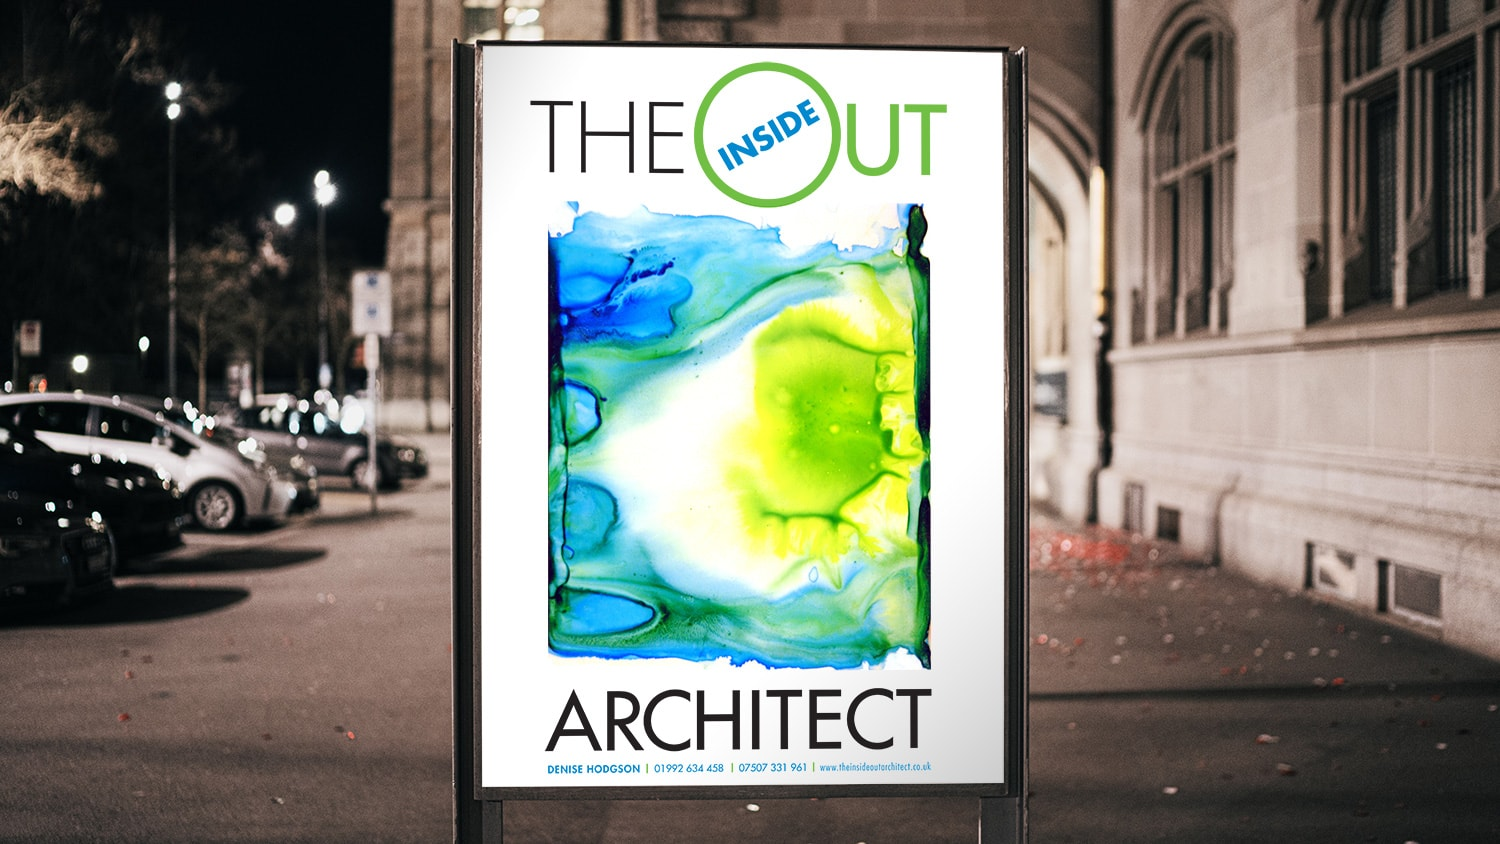 Illuminated poster design for Inside Out Architect outside a building